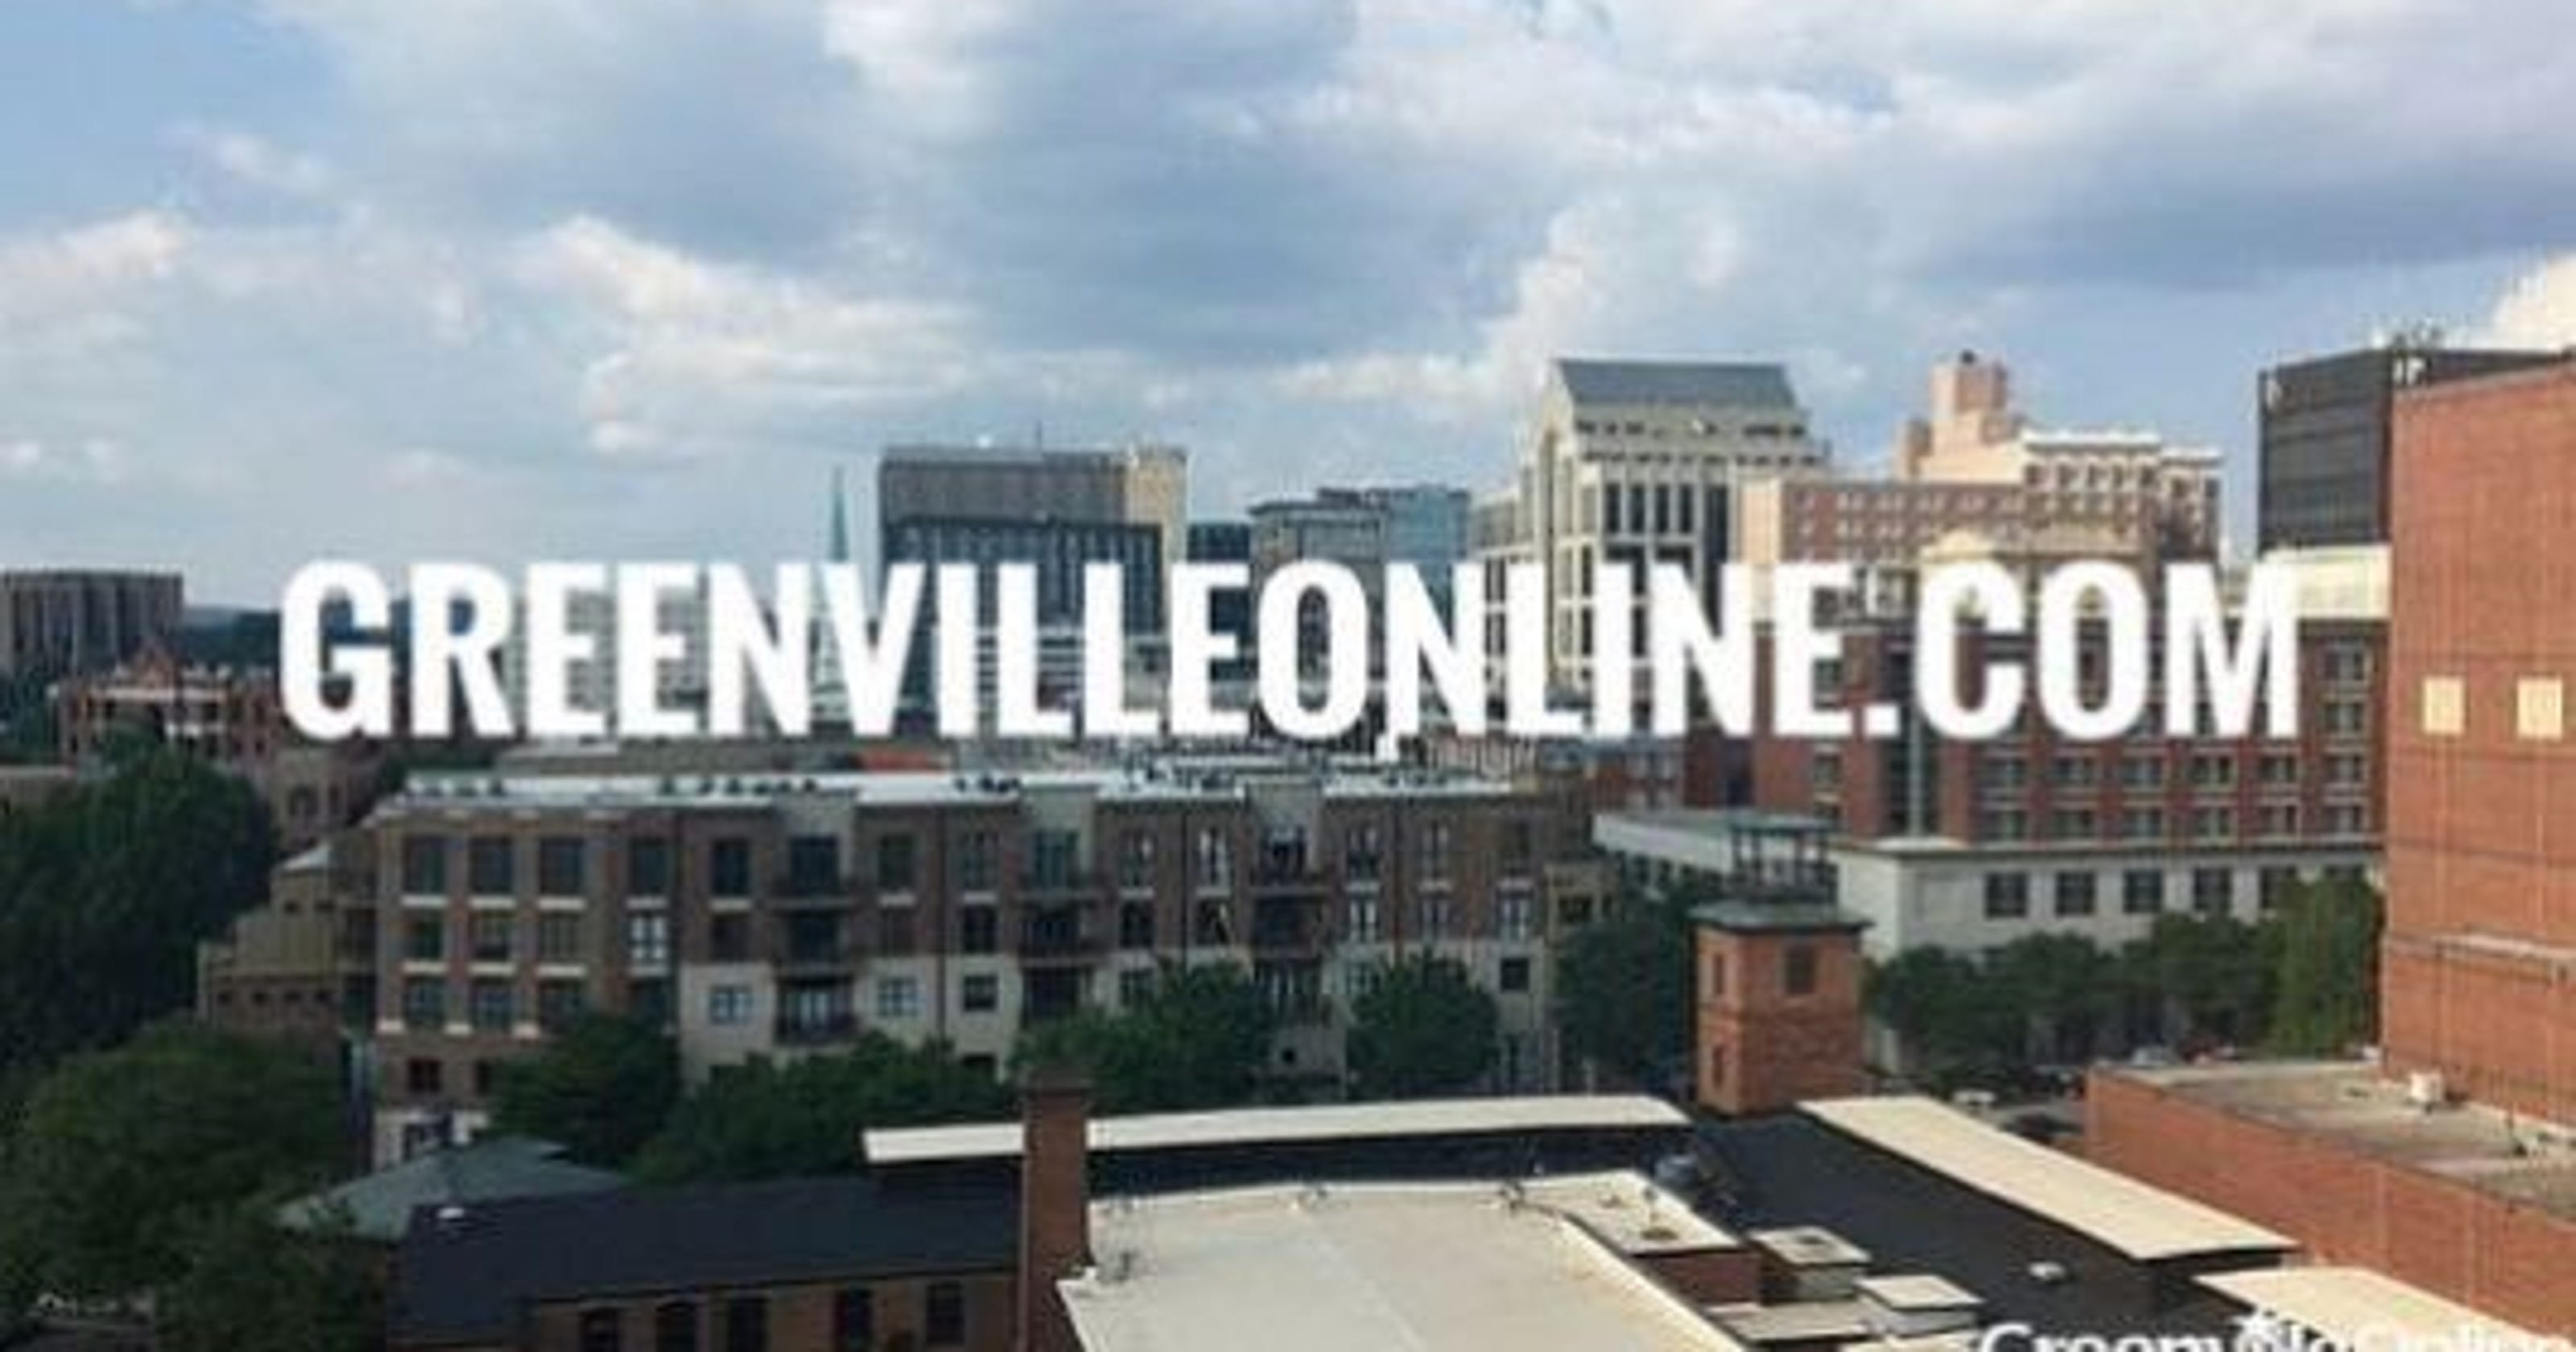 Greenville's affordable housing effort just first step, leaders say